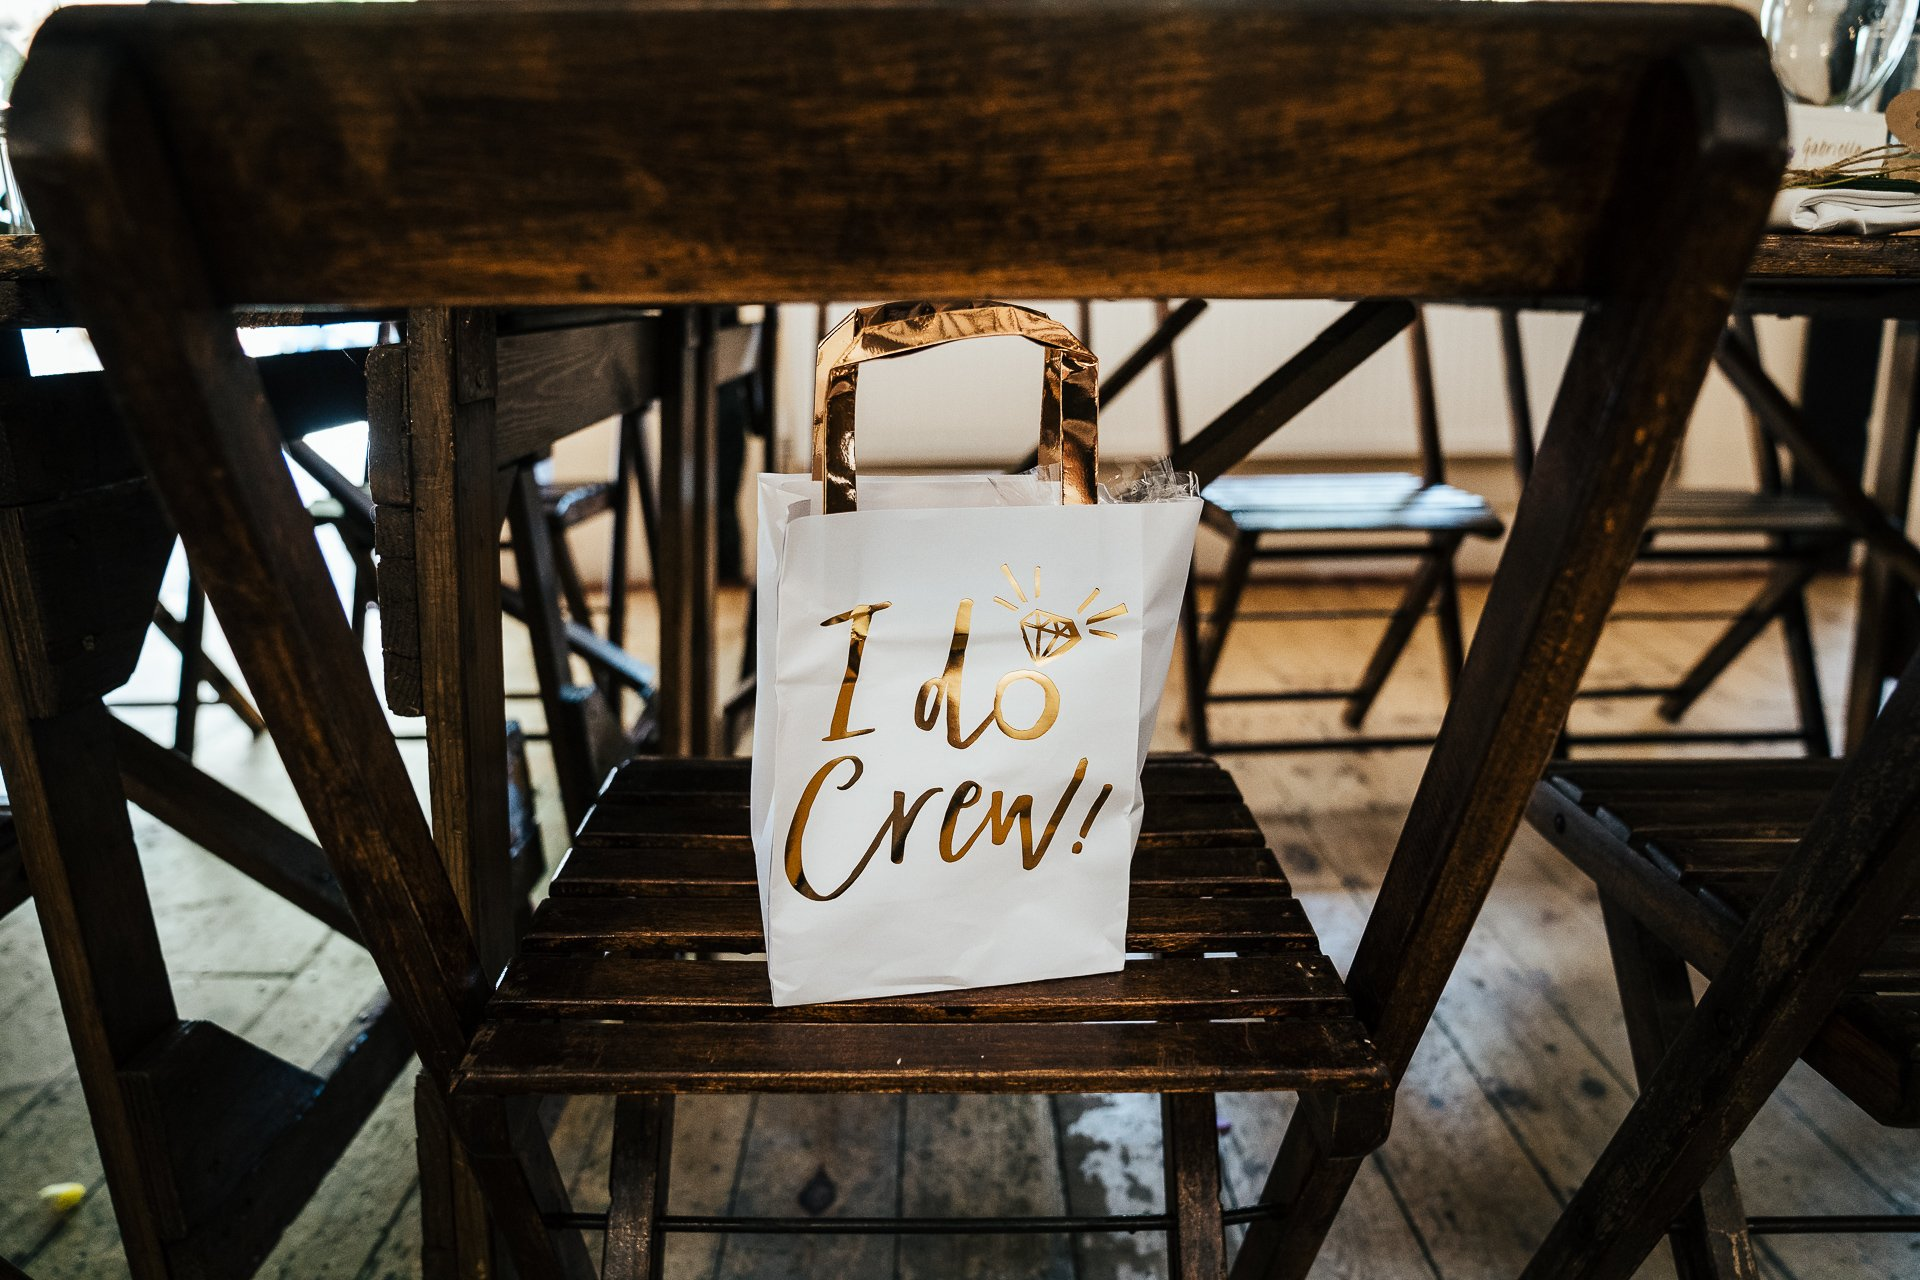 I Do Crew gift bag for kids at a wedding